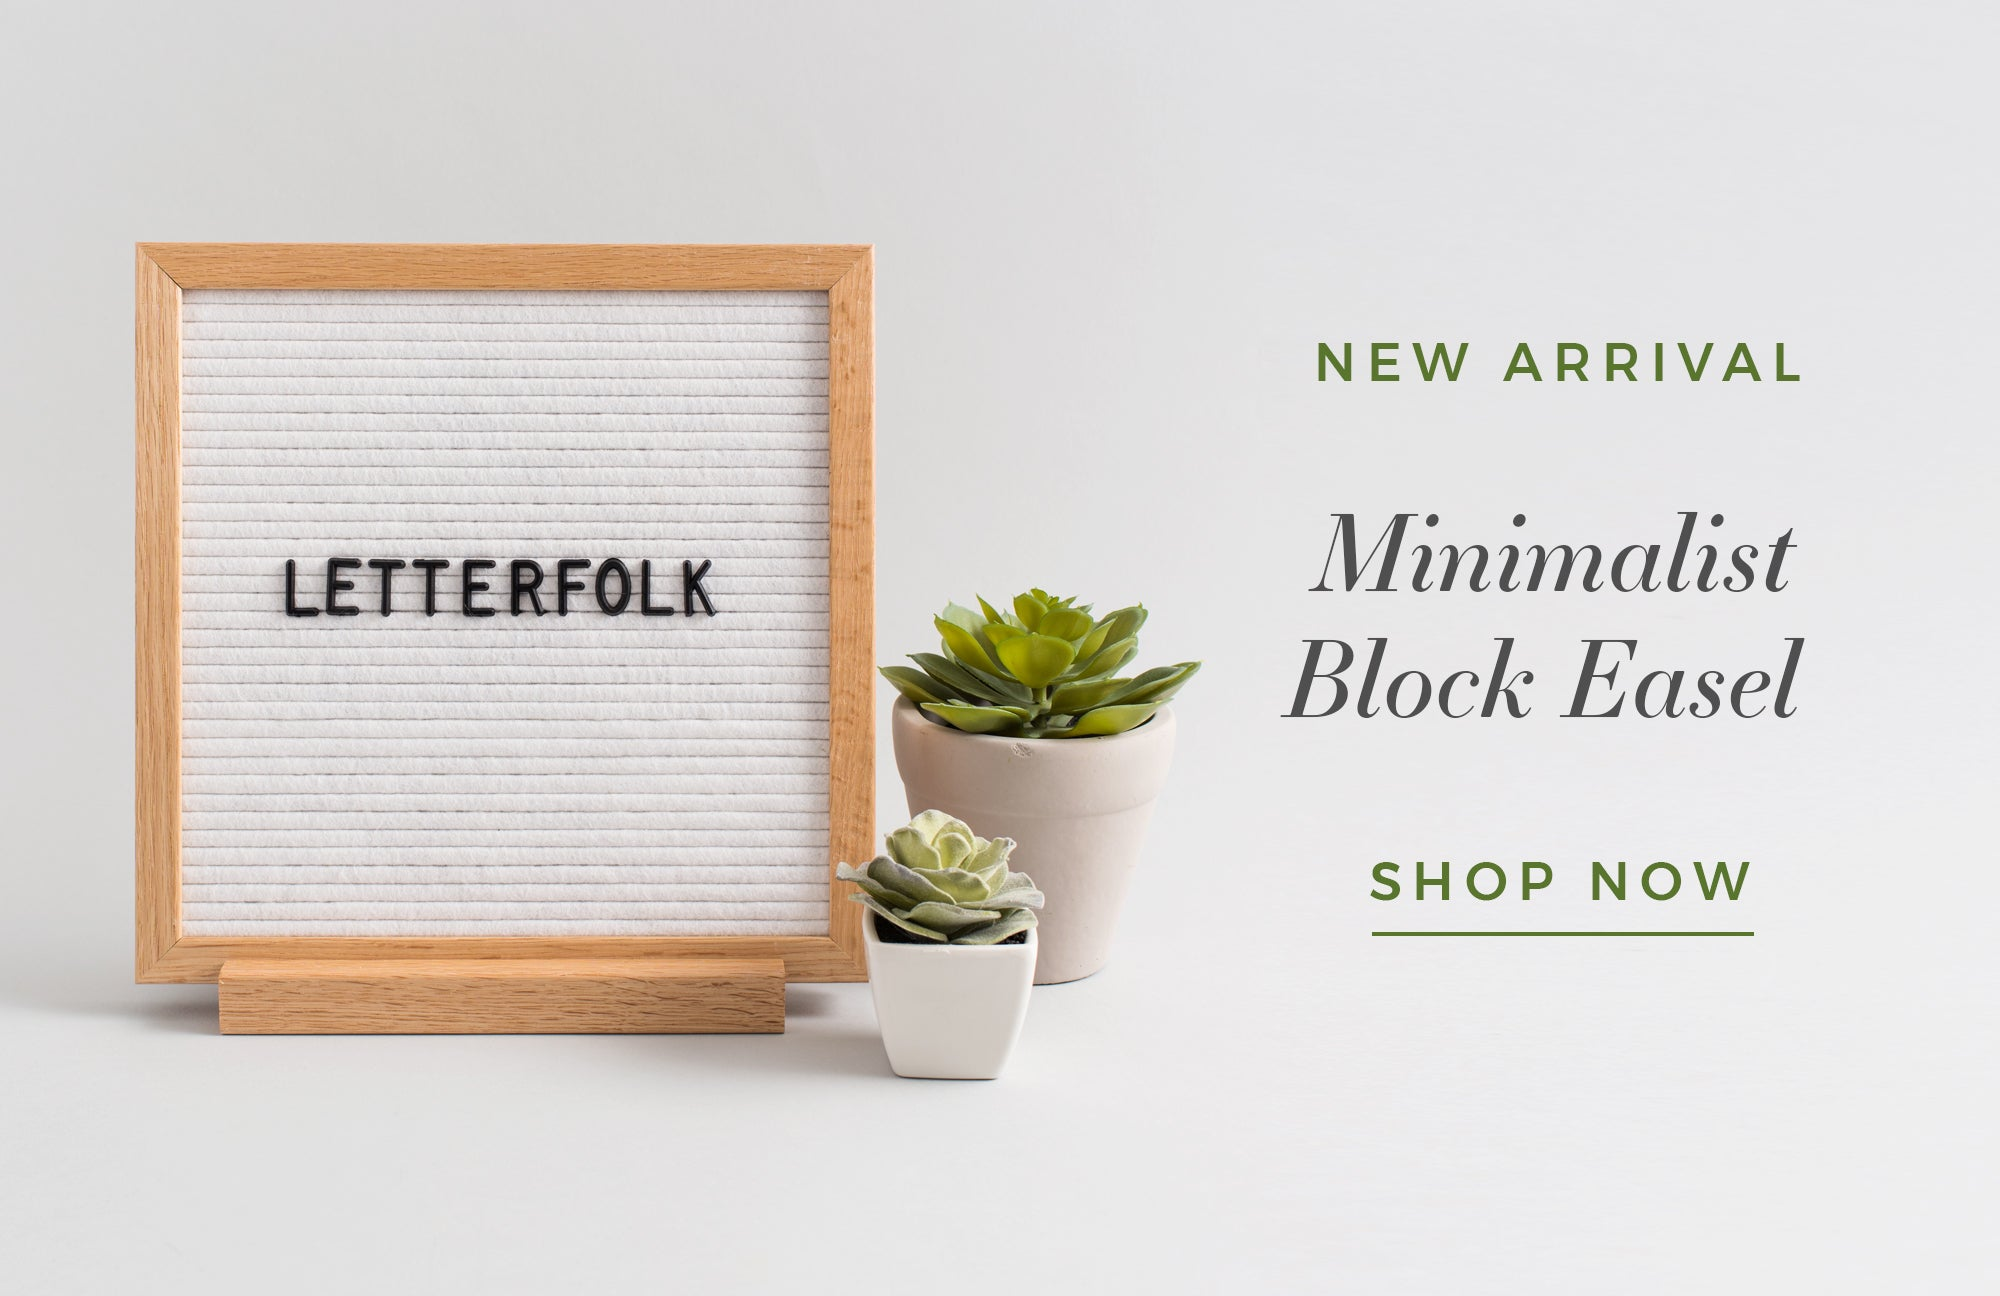 Minimalist Block Easel by Letterfolk